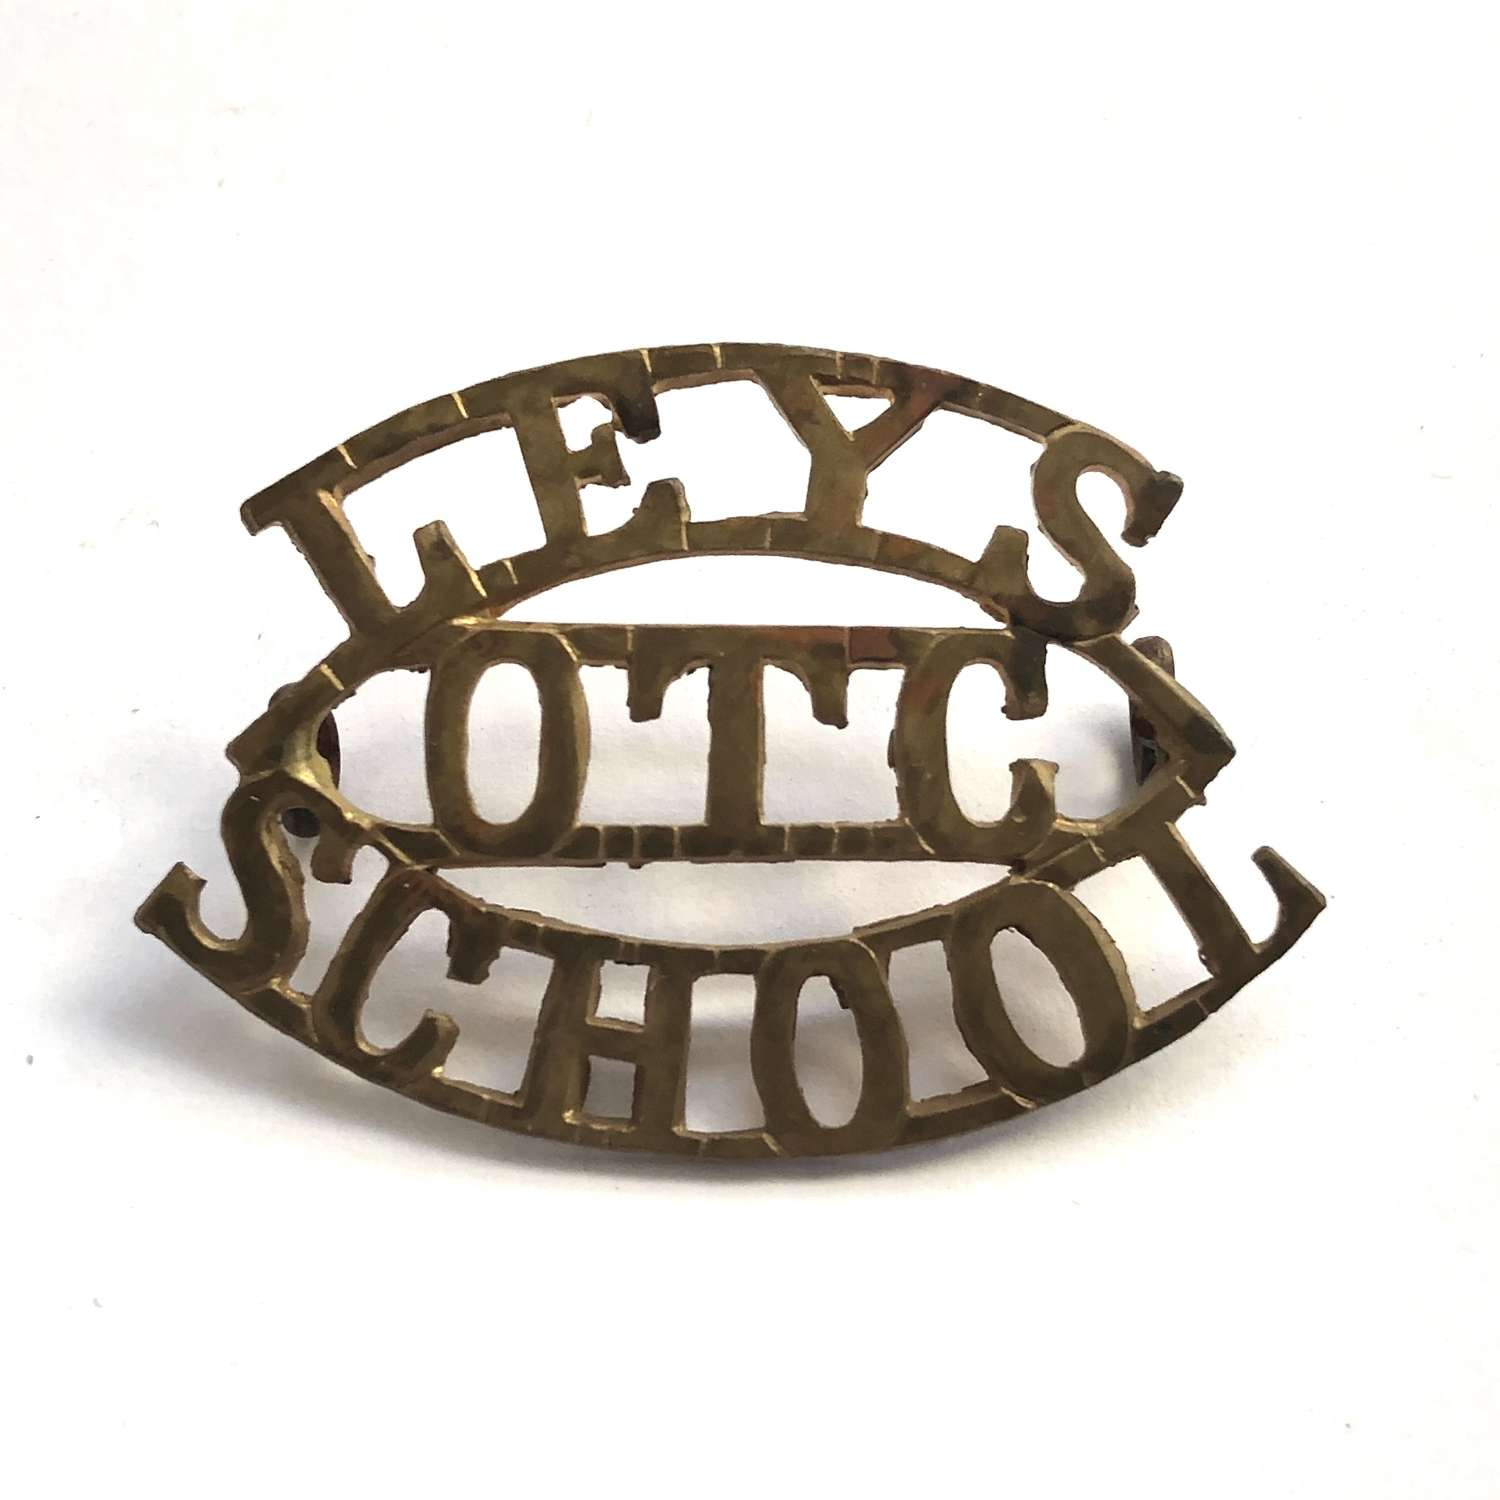 LEYS / OTC / SCHOOL Cambridgeshire shoulder title